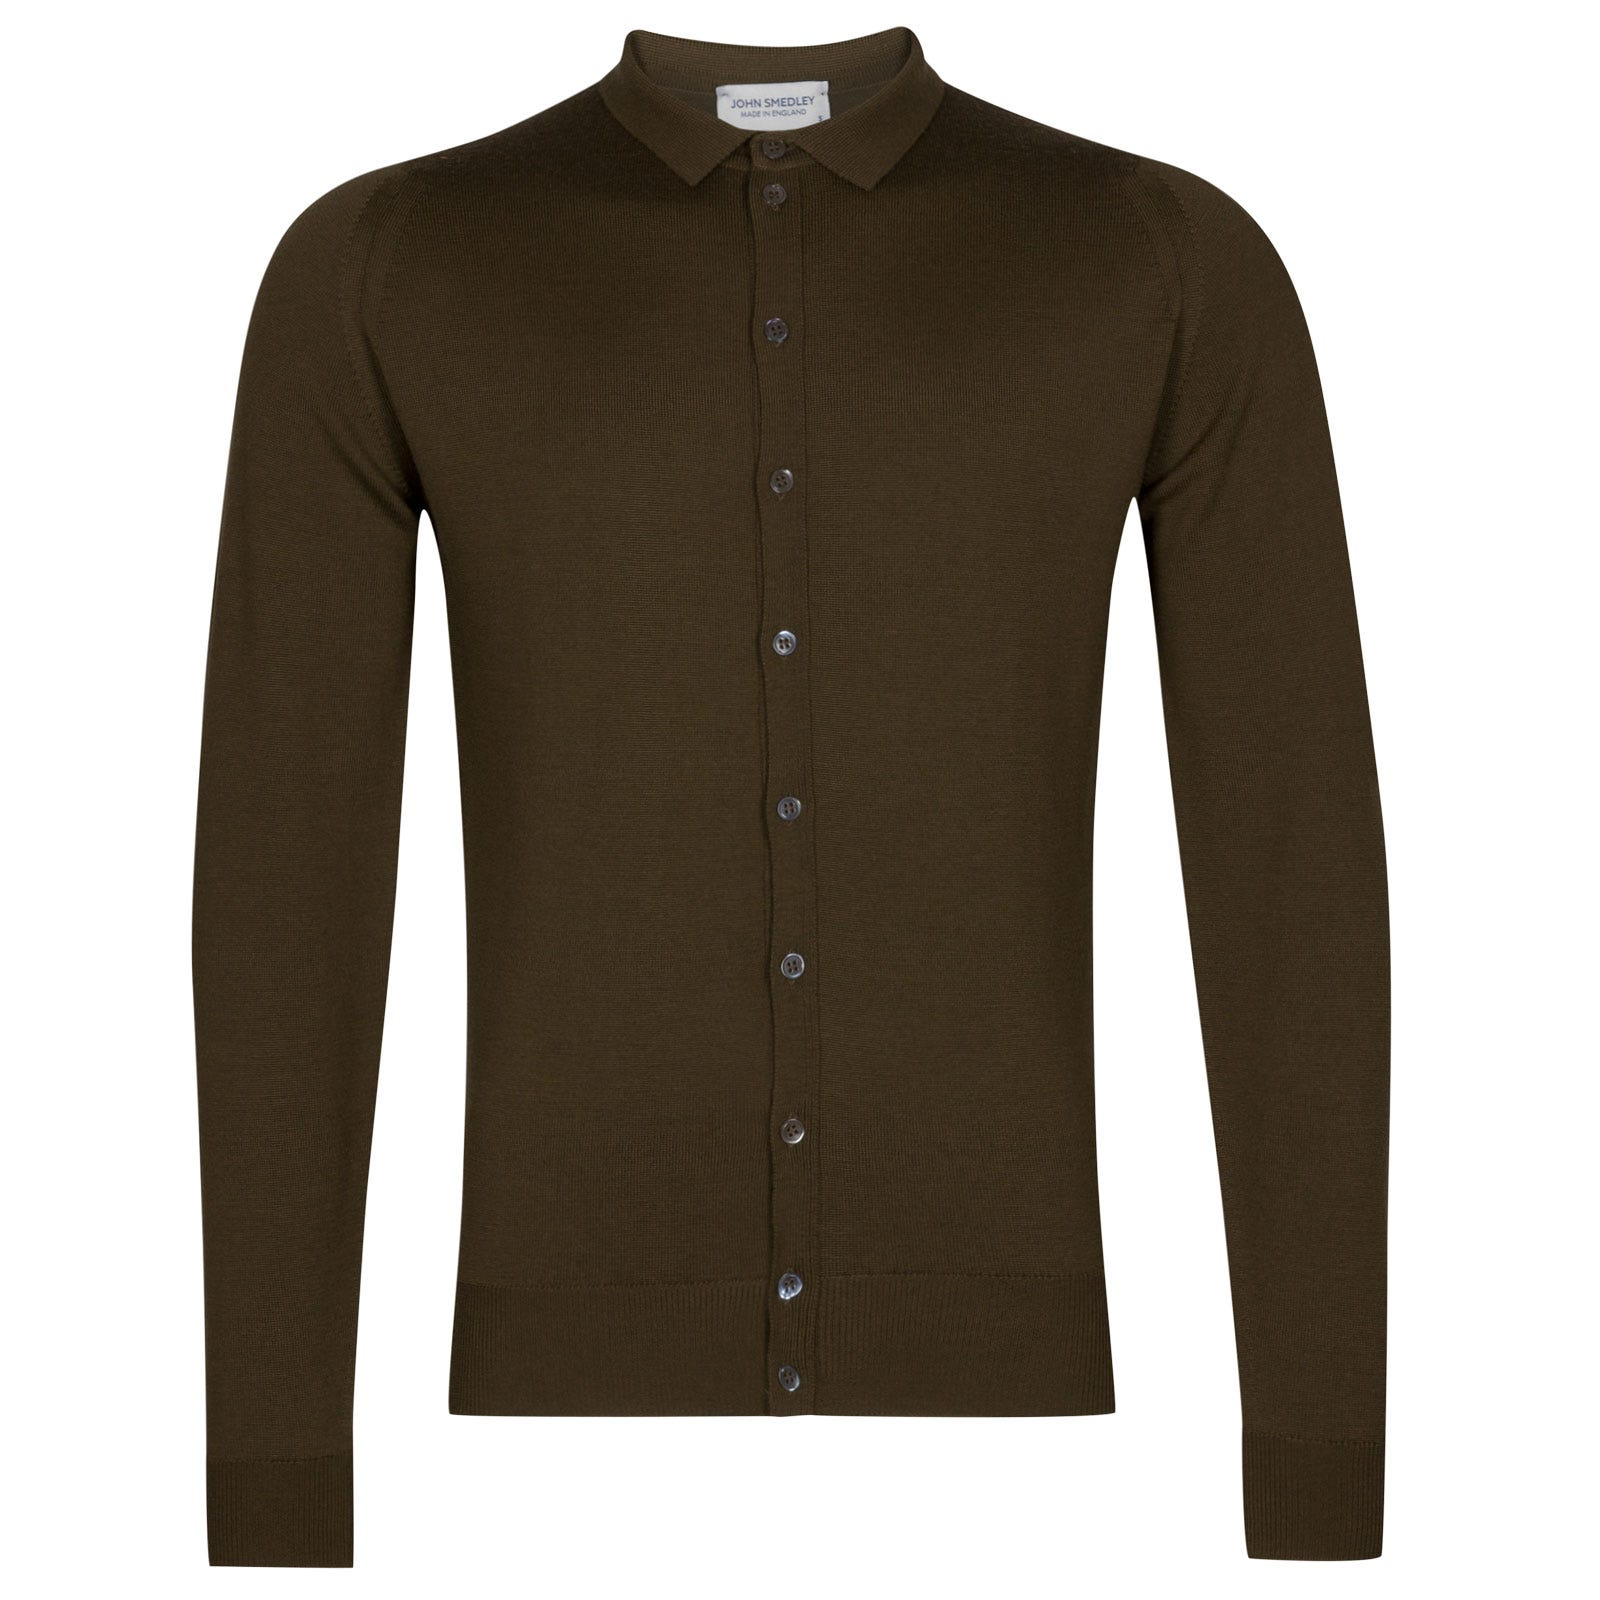 John Smedley parwish Merino Wool Shirt in Kielder Green-S